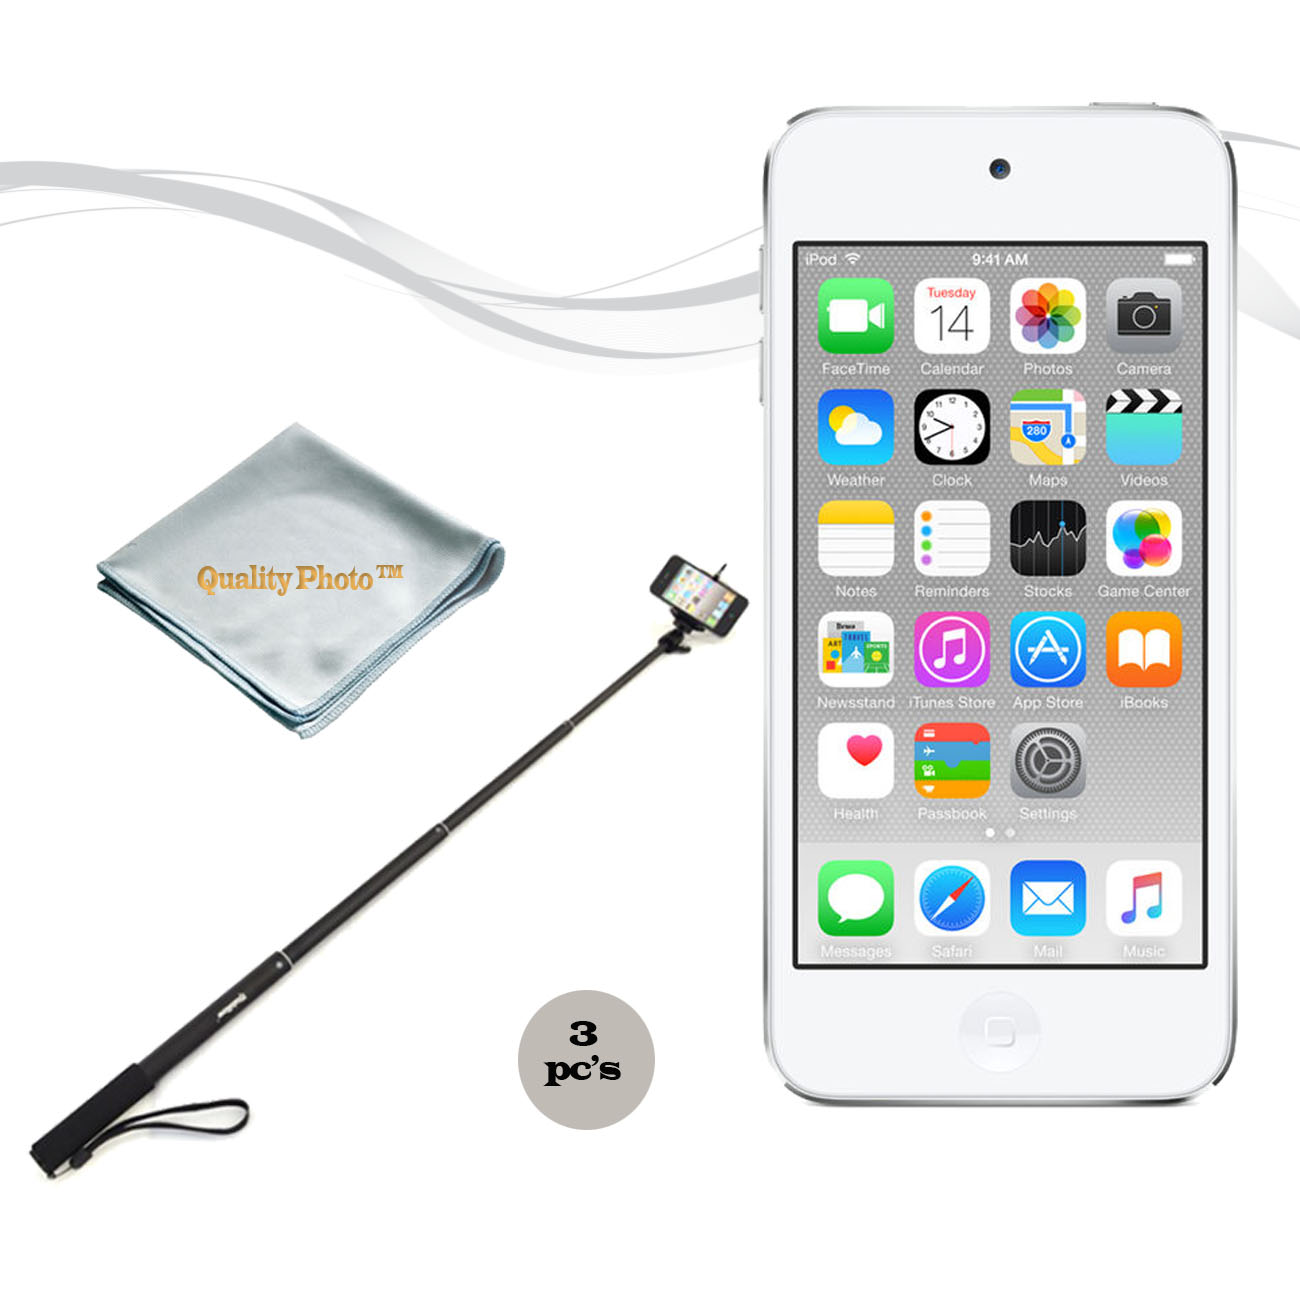 Apple Ipod Touch 16GB Silver (6th Generation) with a Istabilizer Istmp01 Monopod and Quality Photo Microfiber Cloth